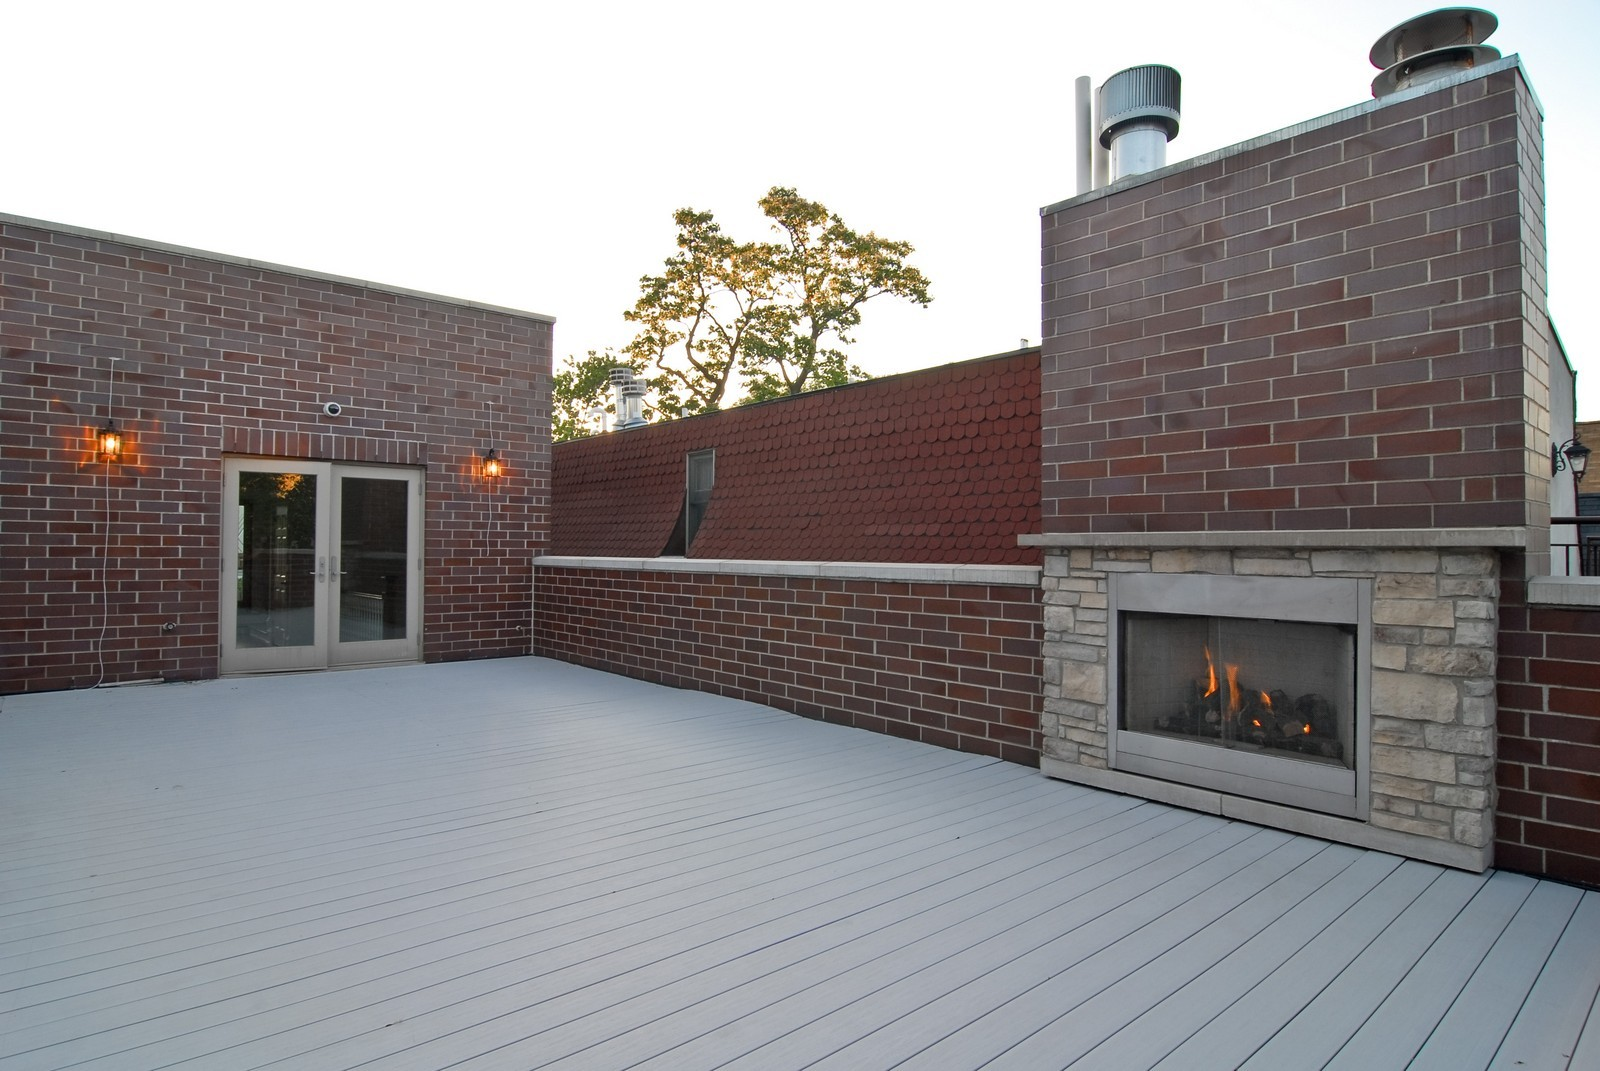 Real Estate Photography - 2663 N Burling, Chicago, IL, 60614 - Roof Deck